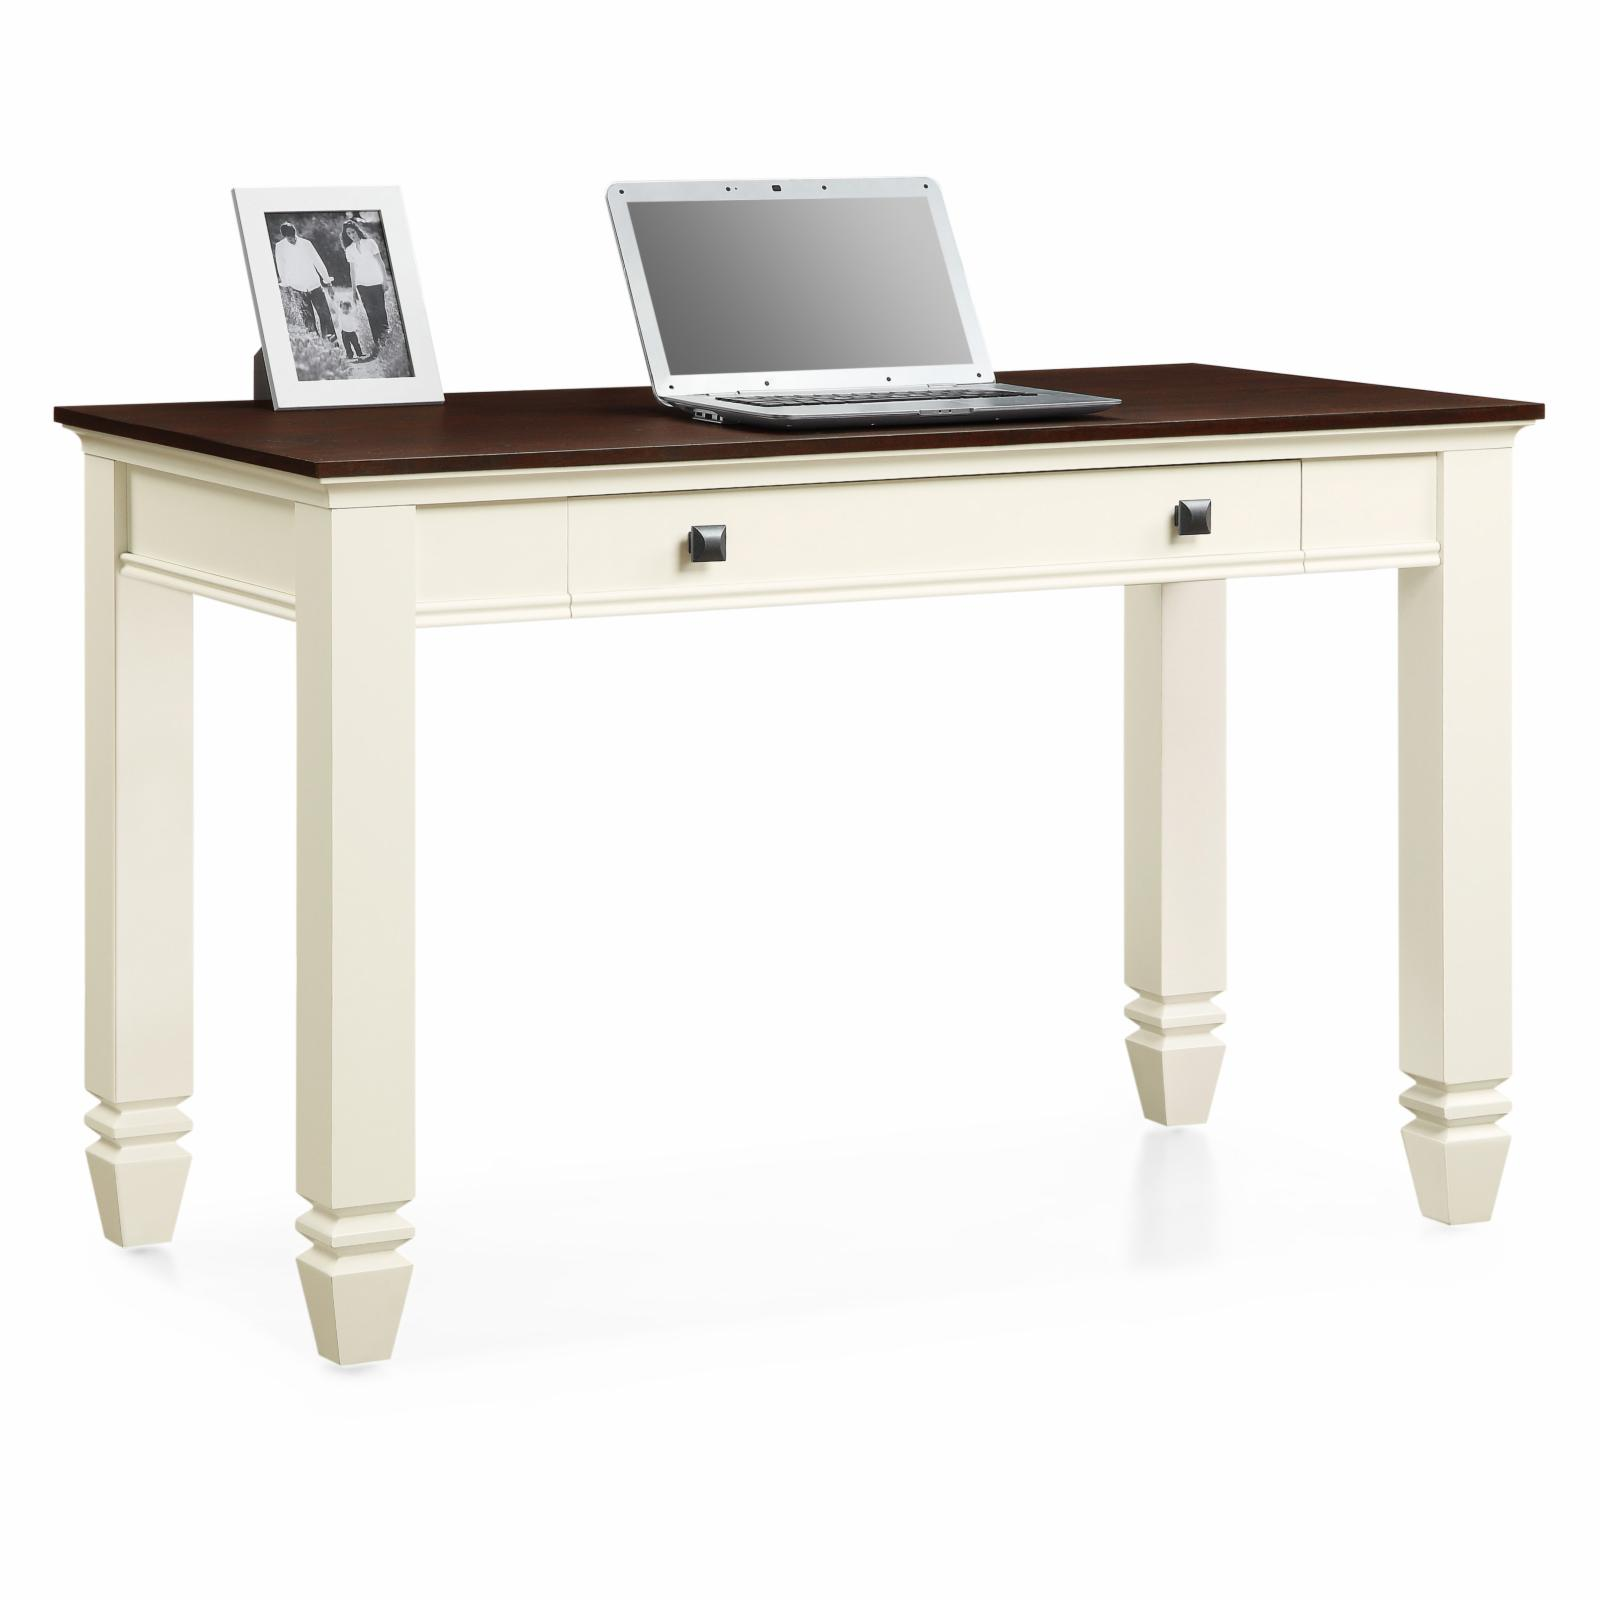 WHALEN Writing Desk - WHAL033-1